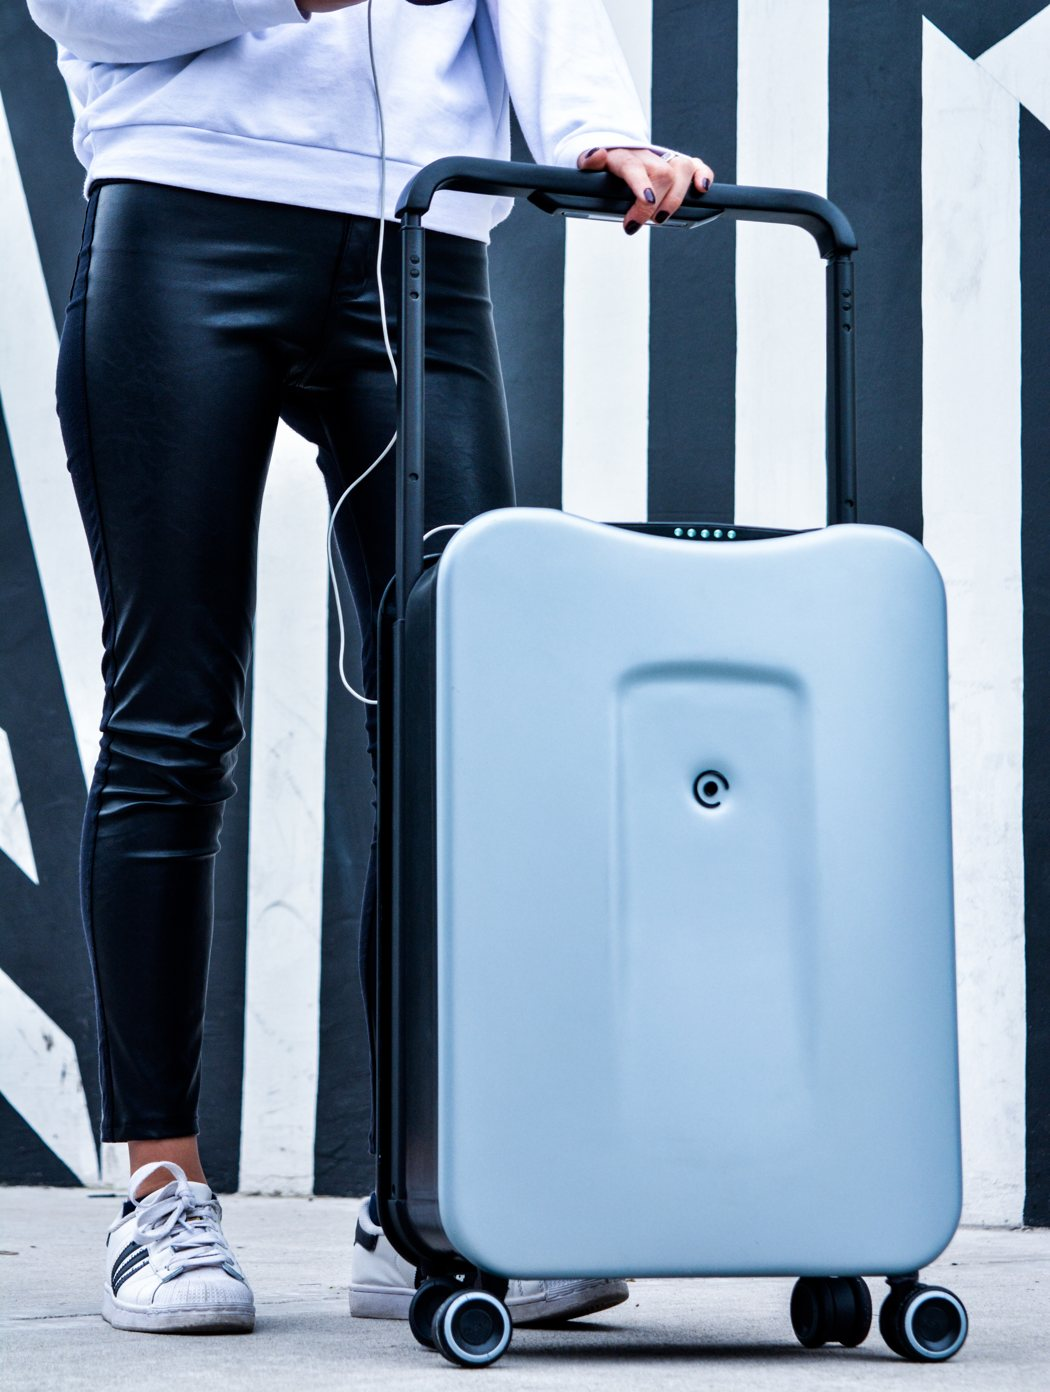 plevo_smart_luggage_11